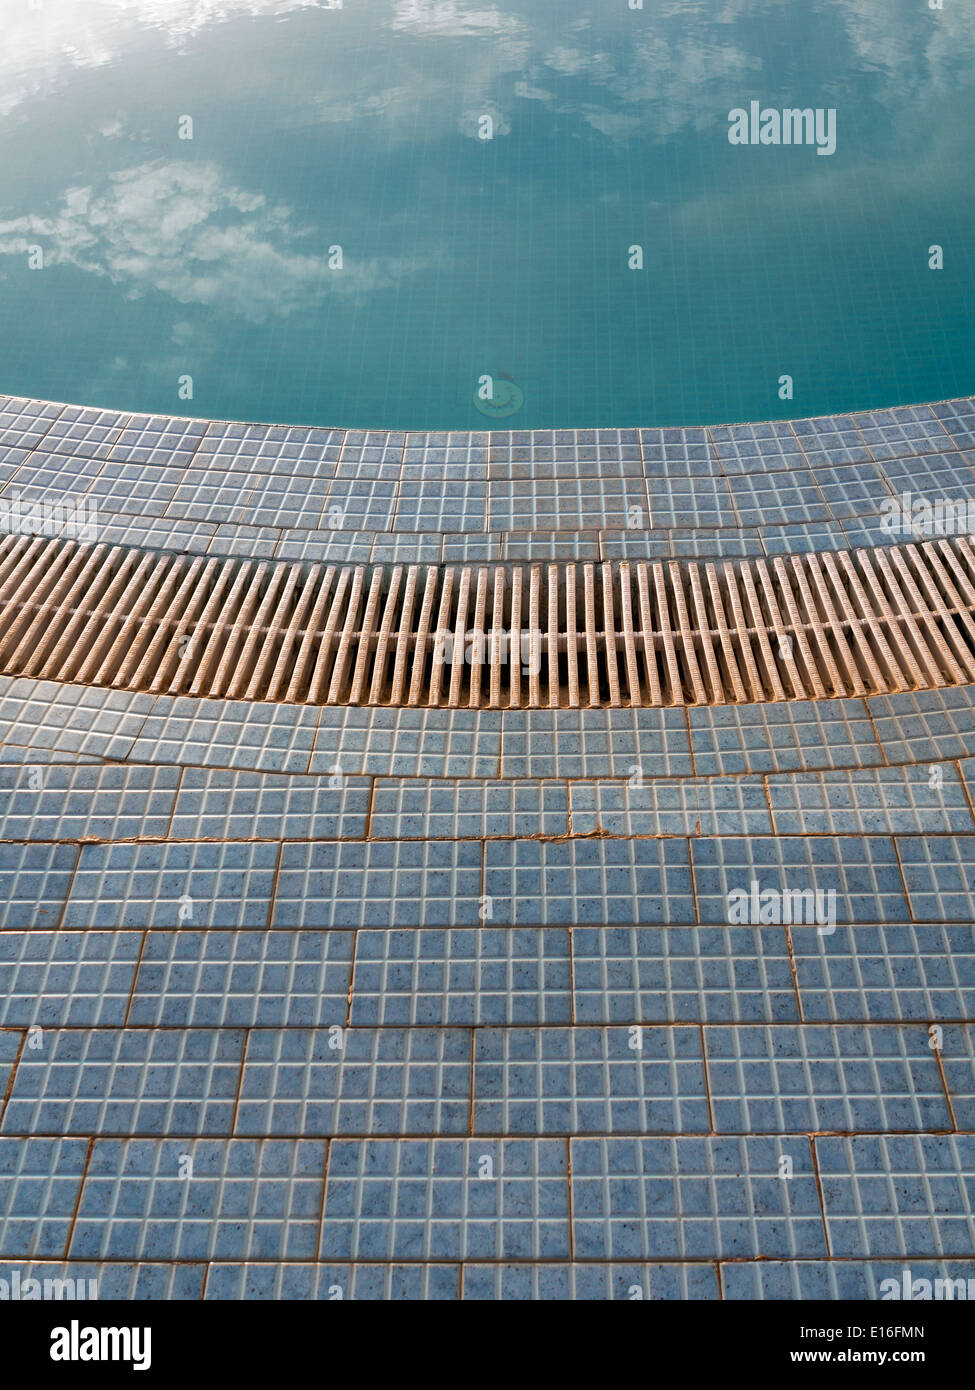 Close up details of floor tiles and drainage edge on a swimming pool ...